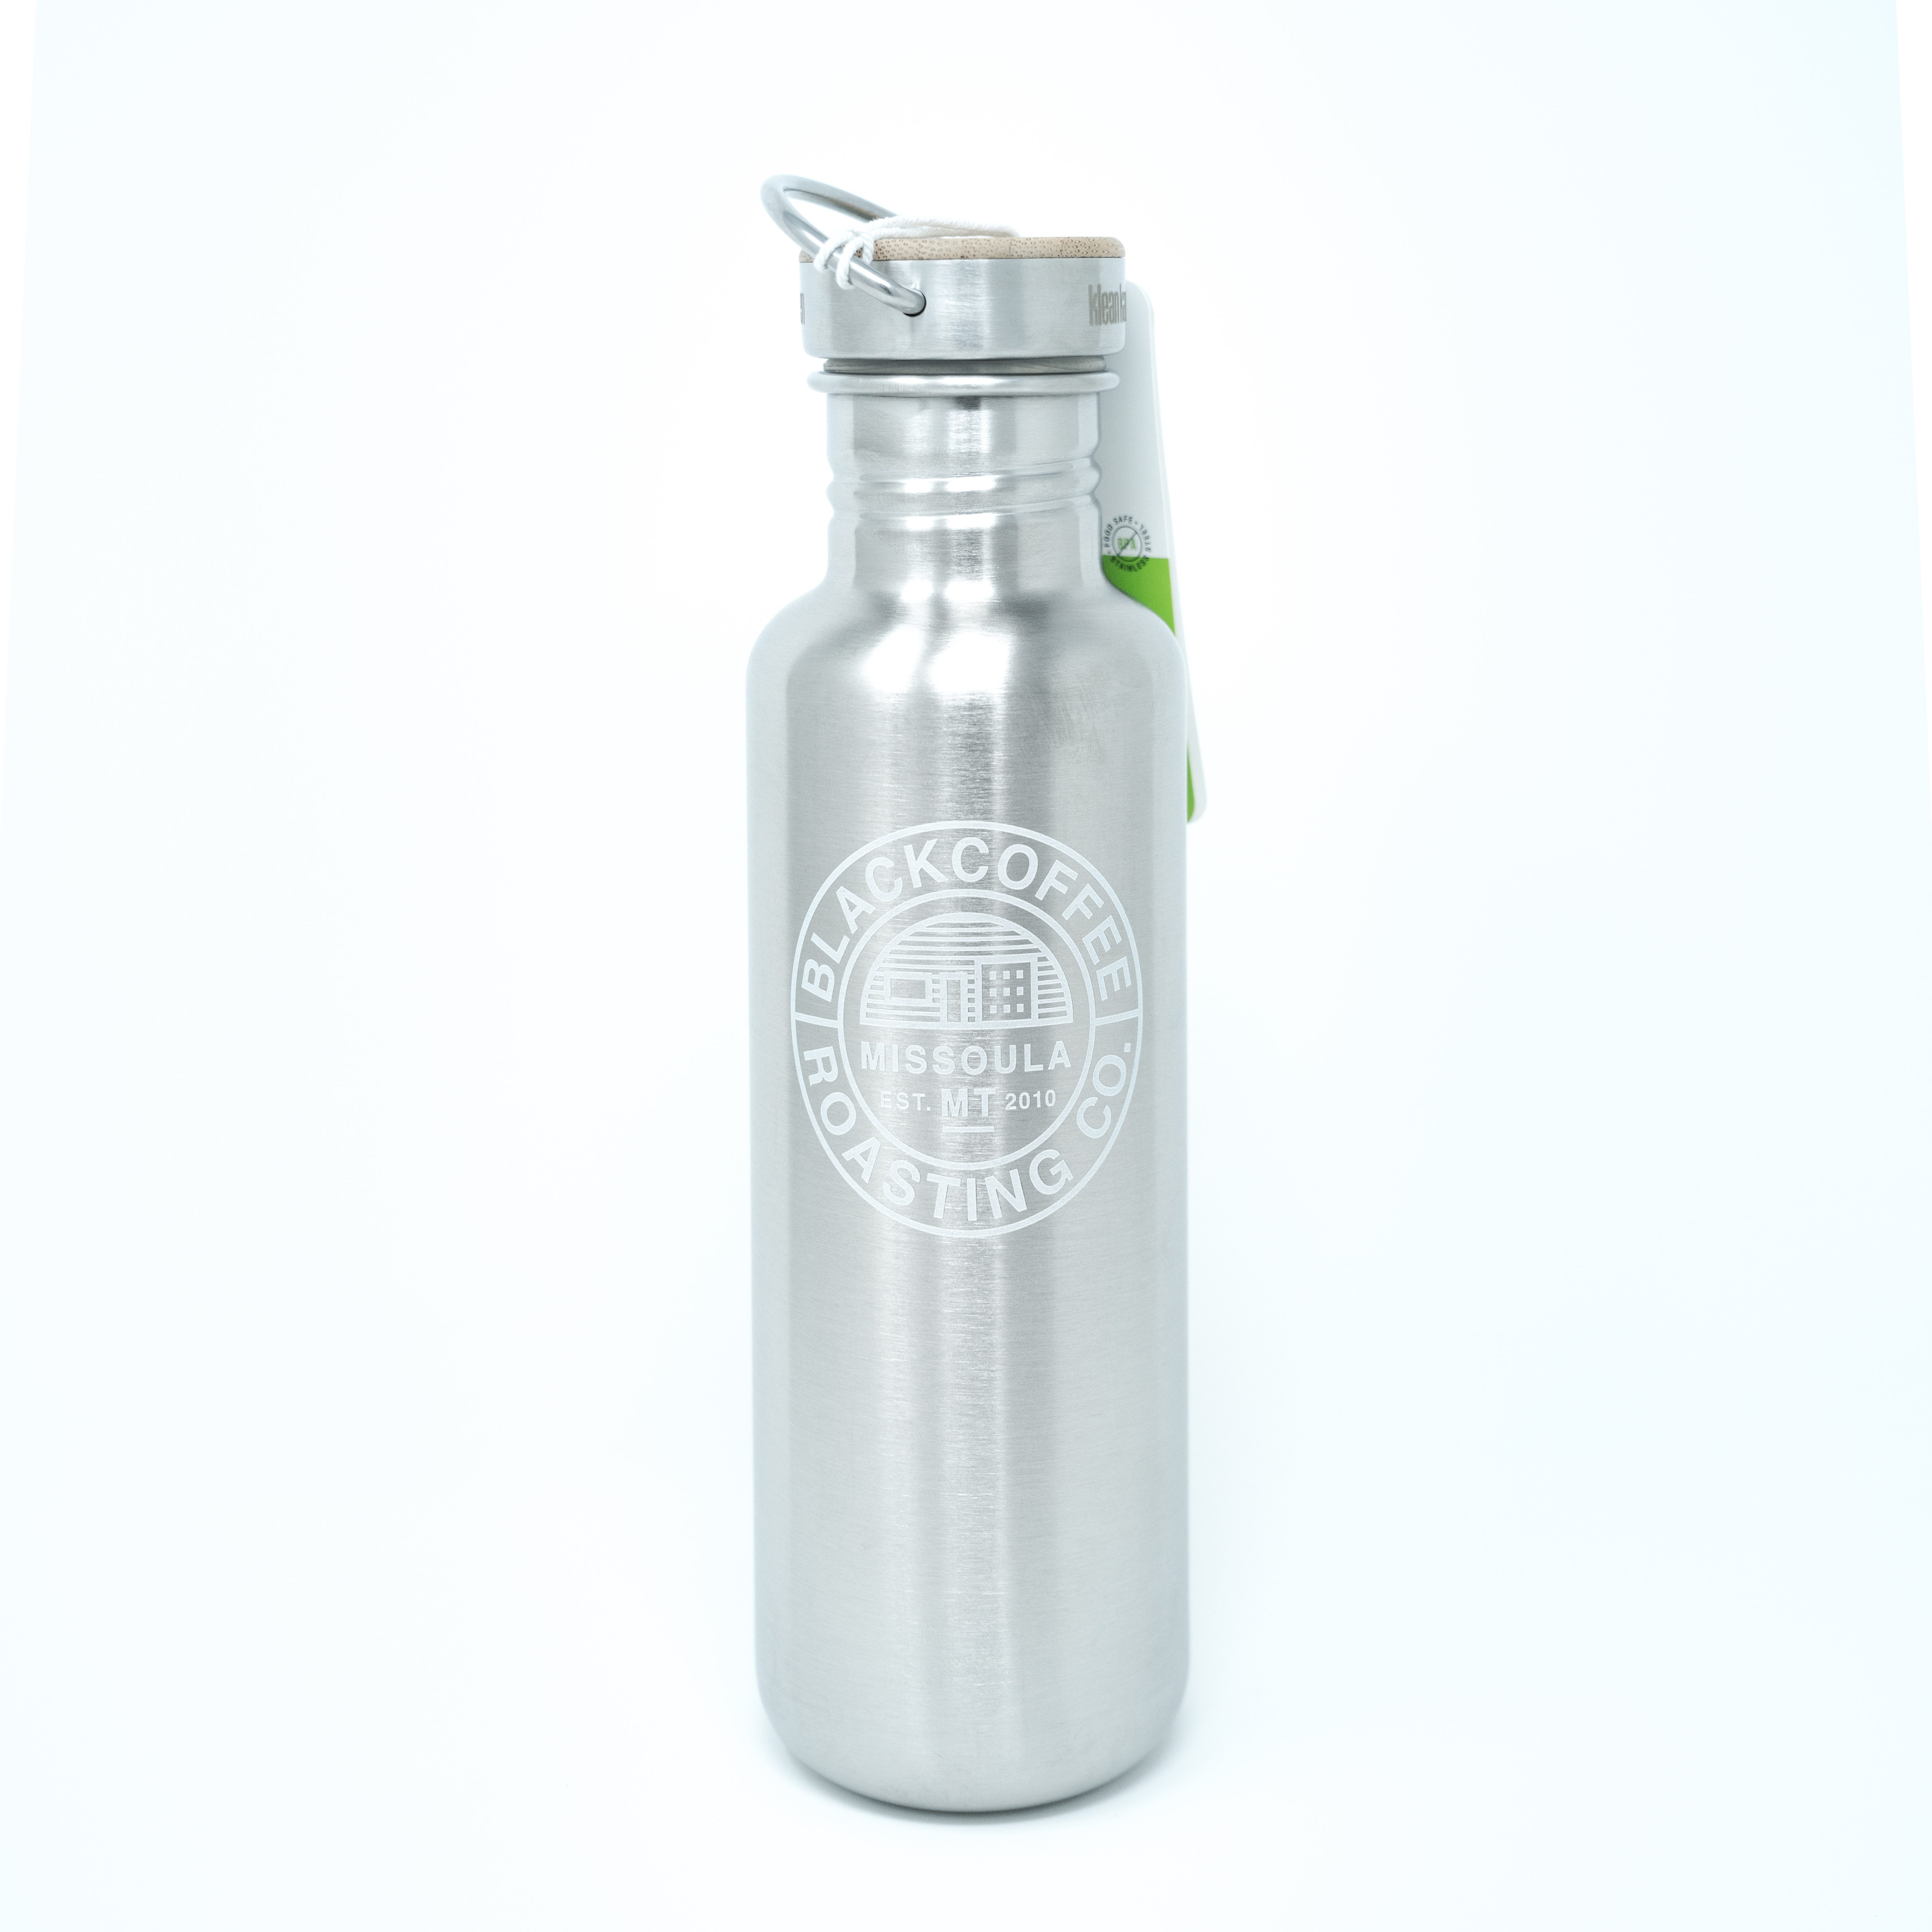 08e4f528282cb Stainless Steel Bottle by Klean Kanteen - Black Coffee Roasting Company